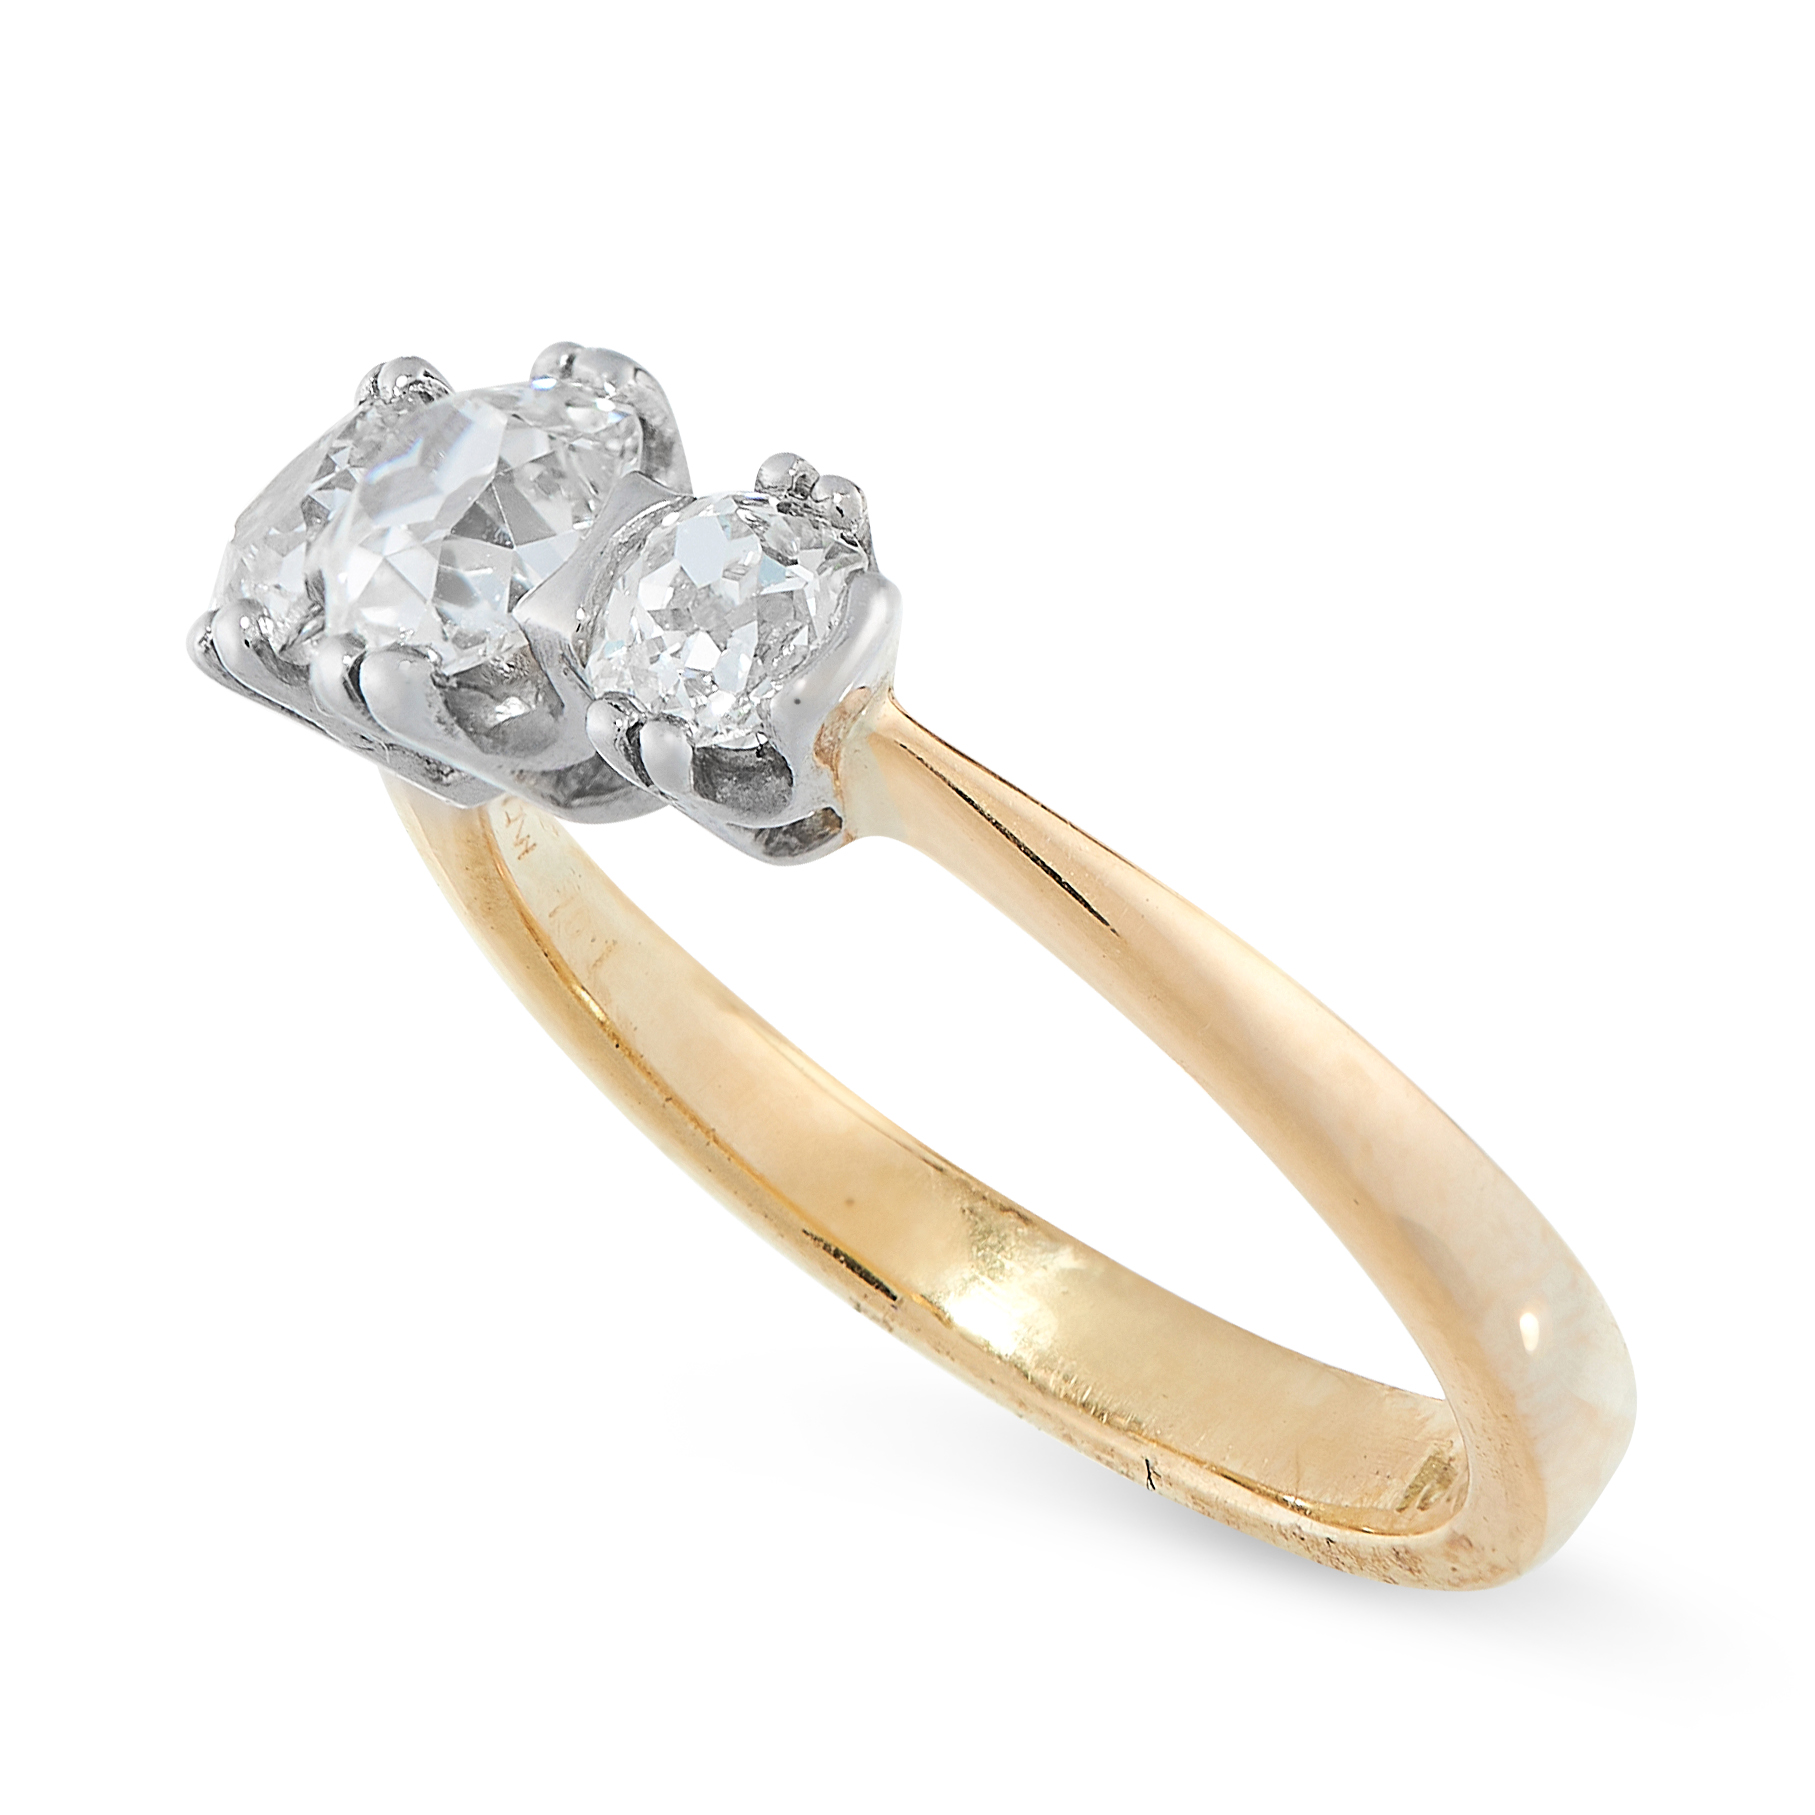 DIAMOND THREE STONE RING in 18ct gold and platinum, set with three old cut diamonds all totalling - Image 2 of 2